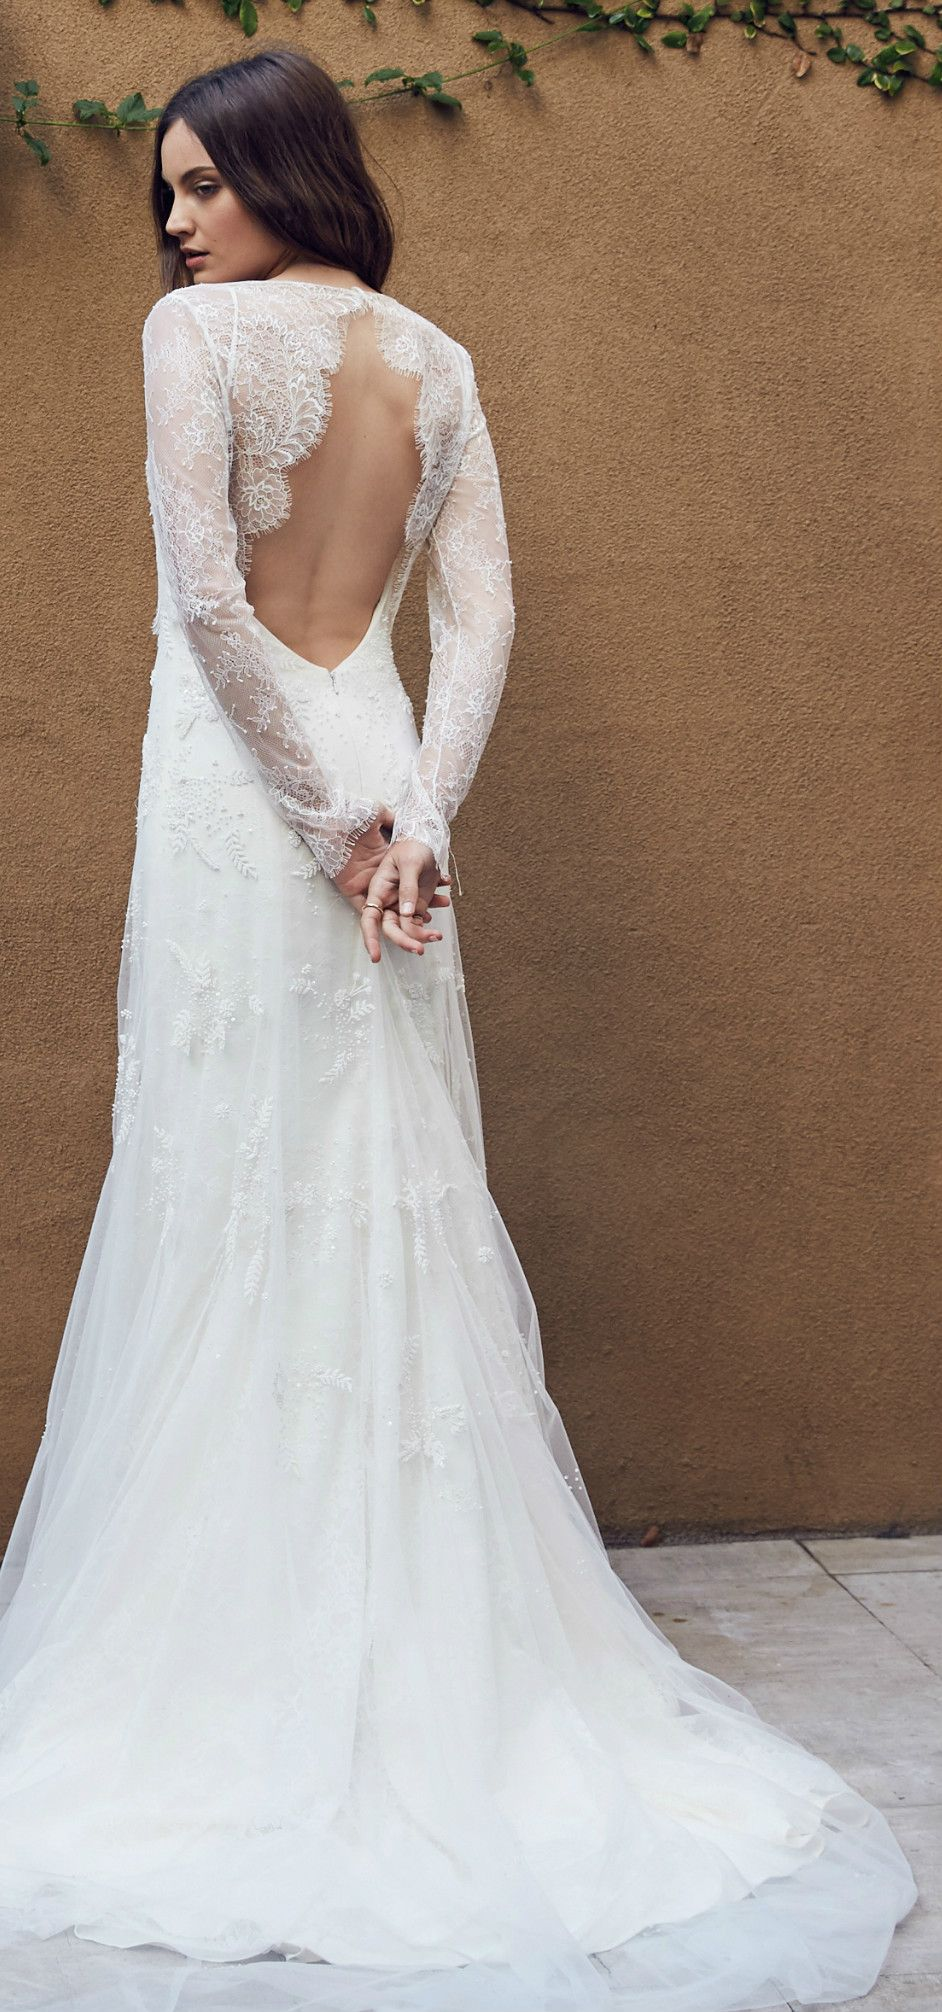 E. Stone | Lace wedding dresses, Lace wedding and Wedding dress